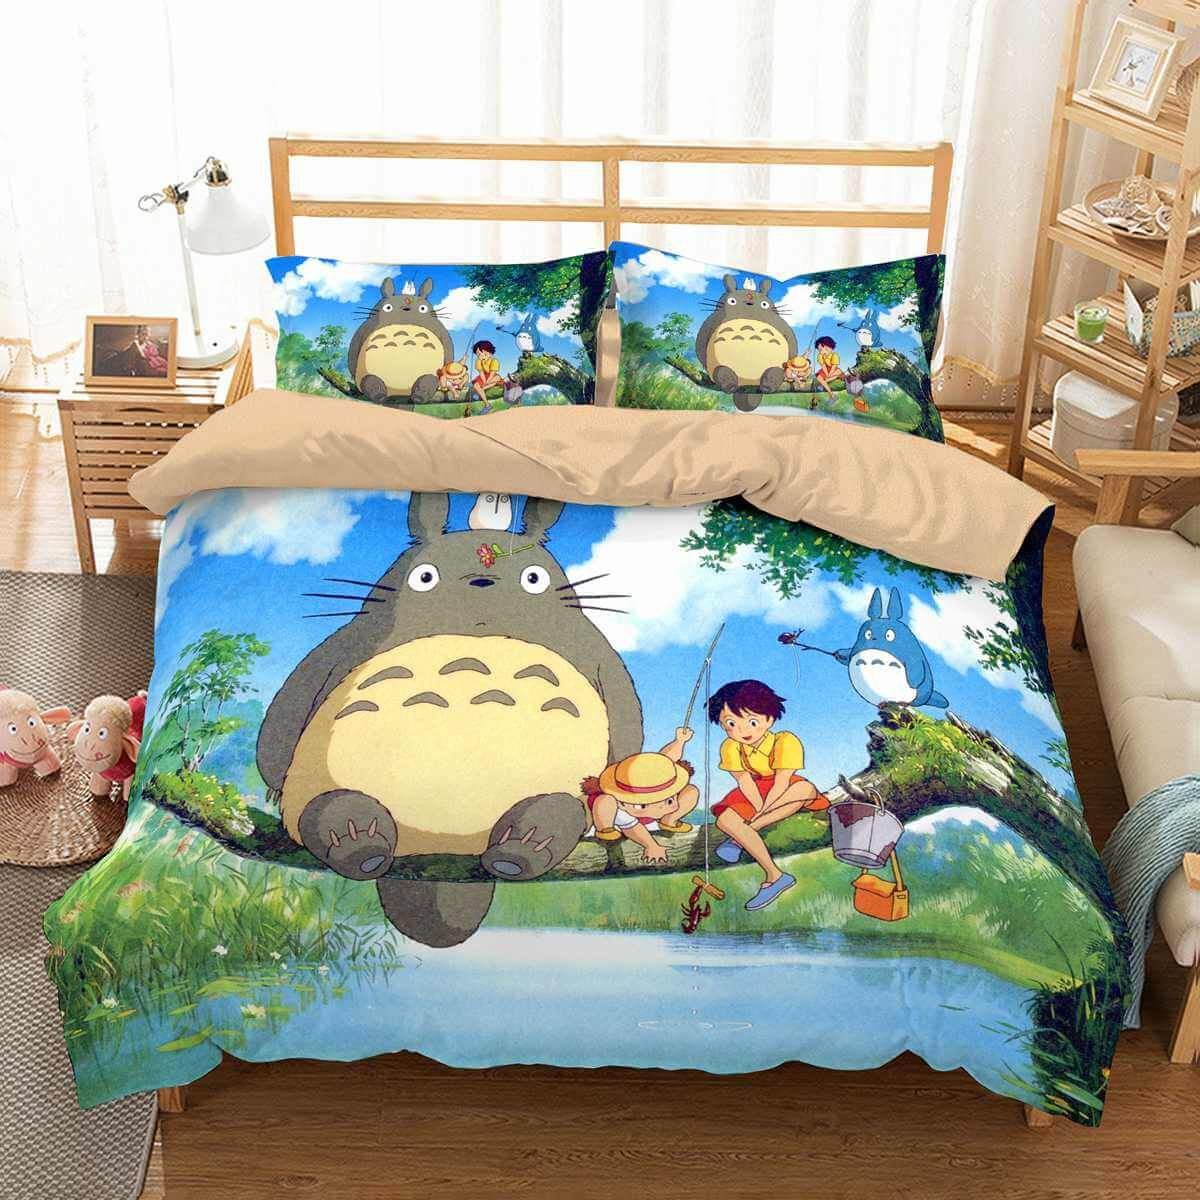 3d Customize My Neighbor Totoro Bedding Set Duvet Cover Set Bedroom Set Bedlinen Custom Bed Bright Bedding Sets My Neighbor Totoro